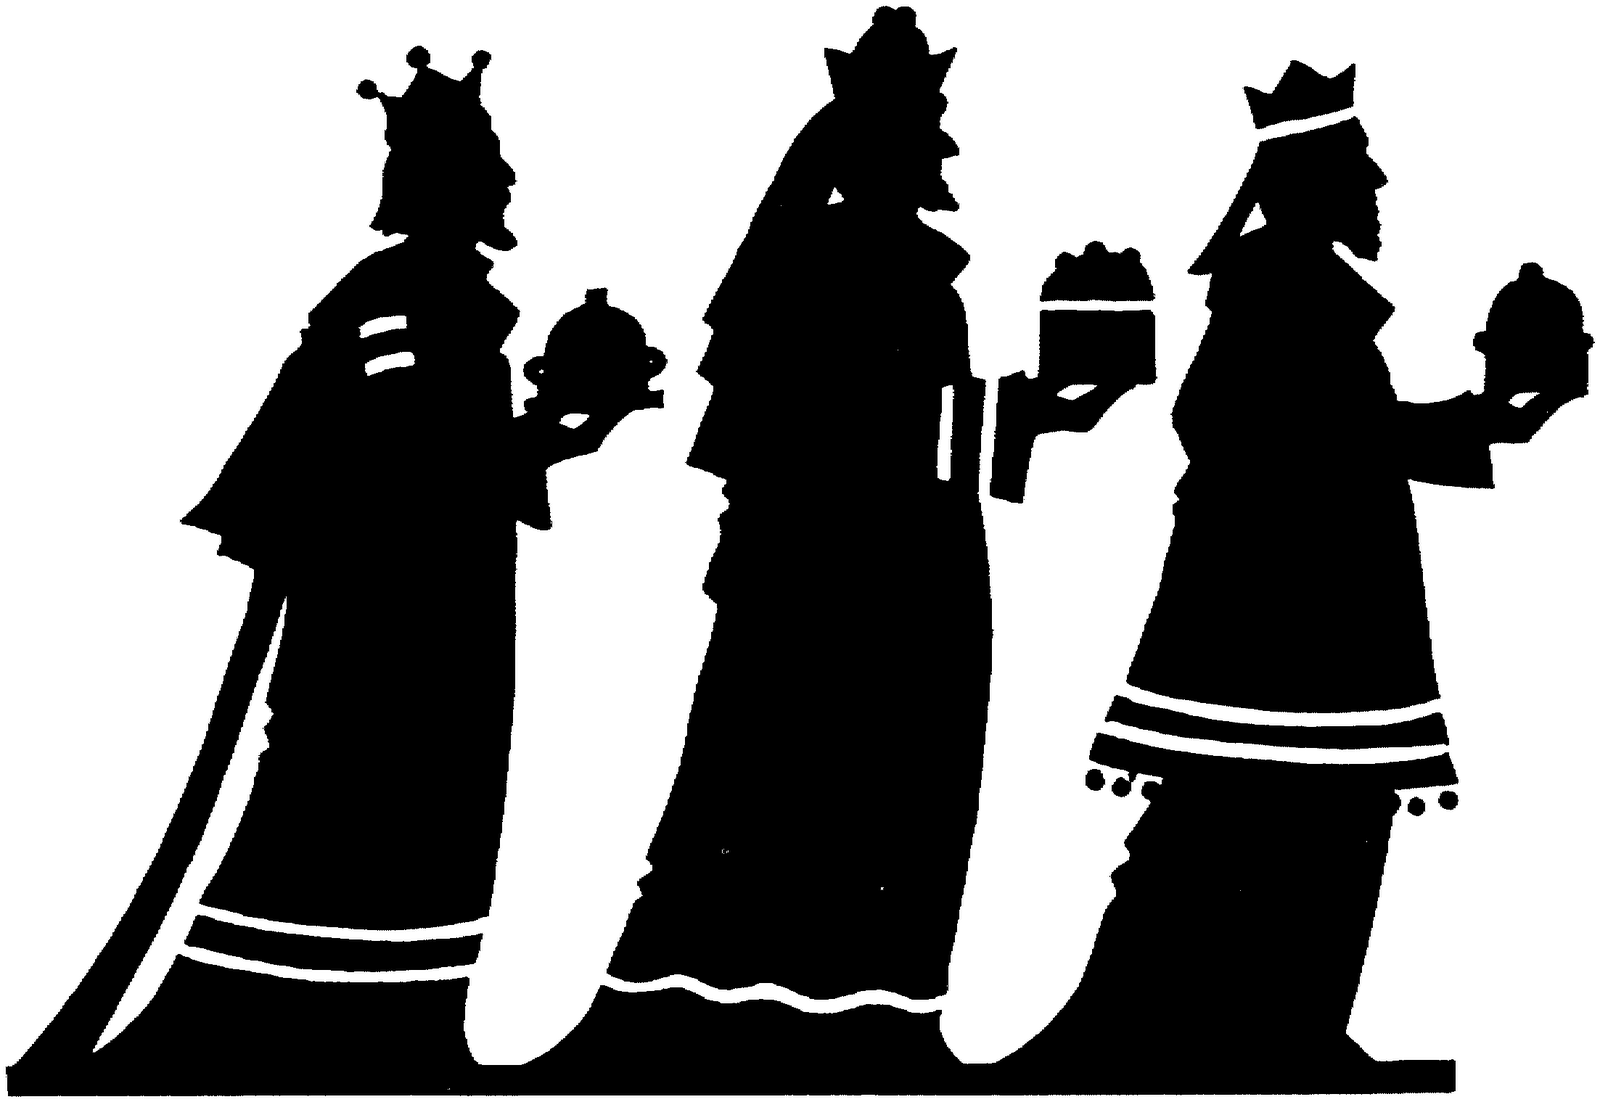 Free sunday cliparts download. Epiphany clipart kings